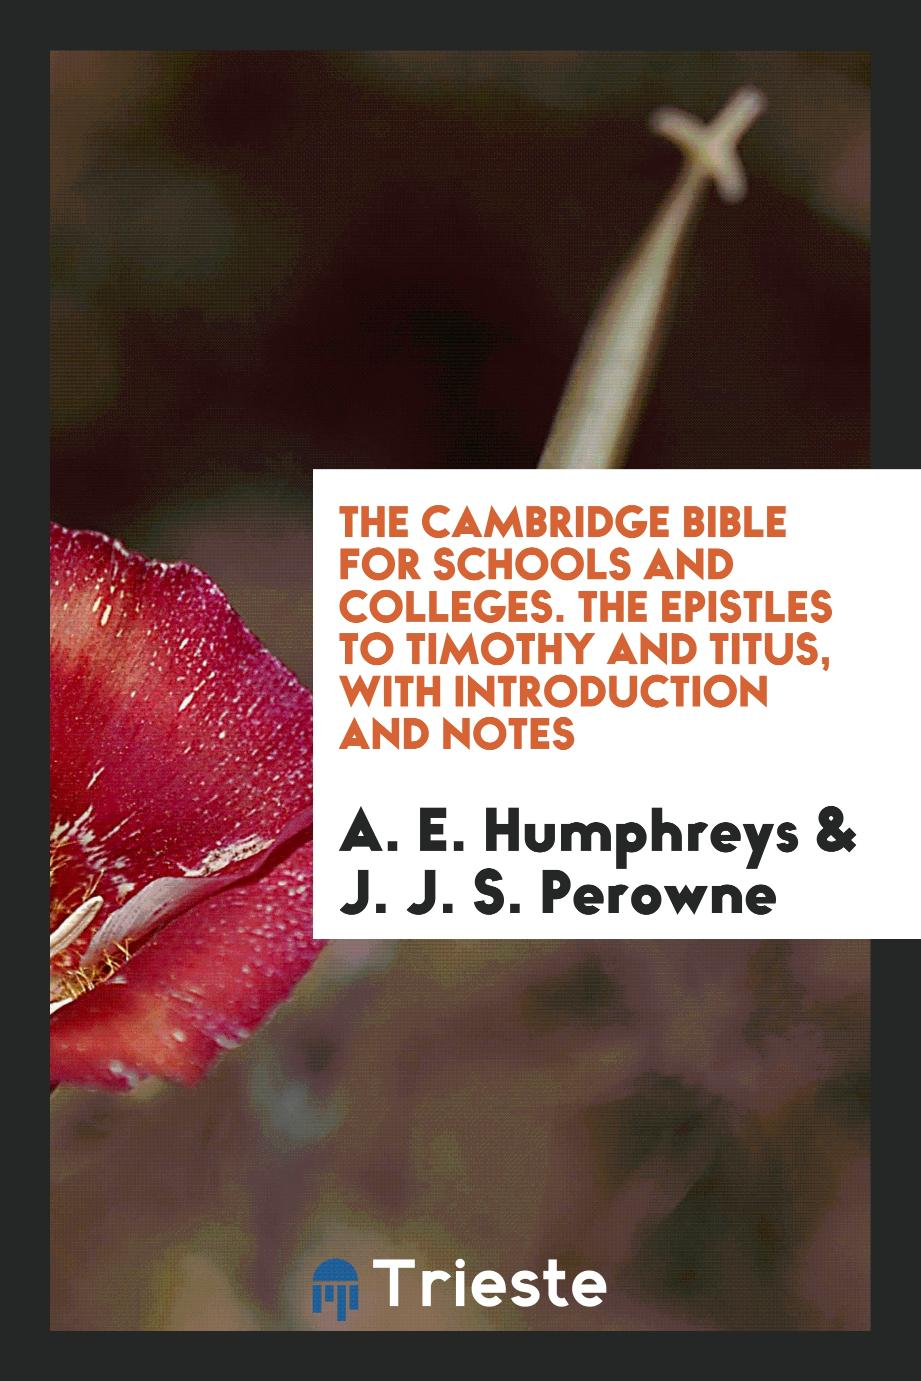 The Cambridge Bible for Schools and Colleges. The Epistles to Timothy and Titus, with Introduction and Notes